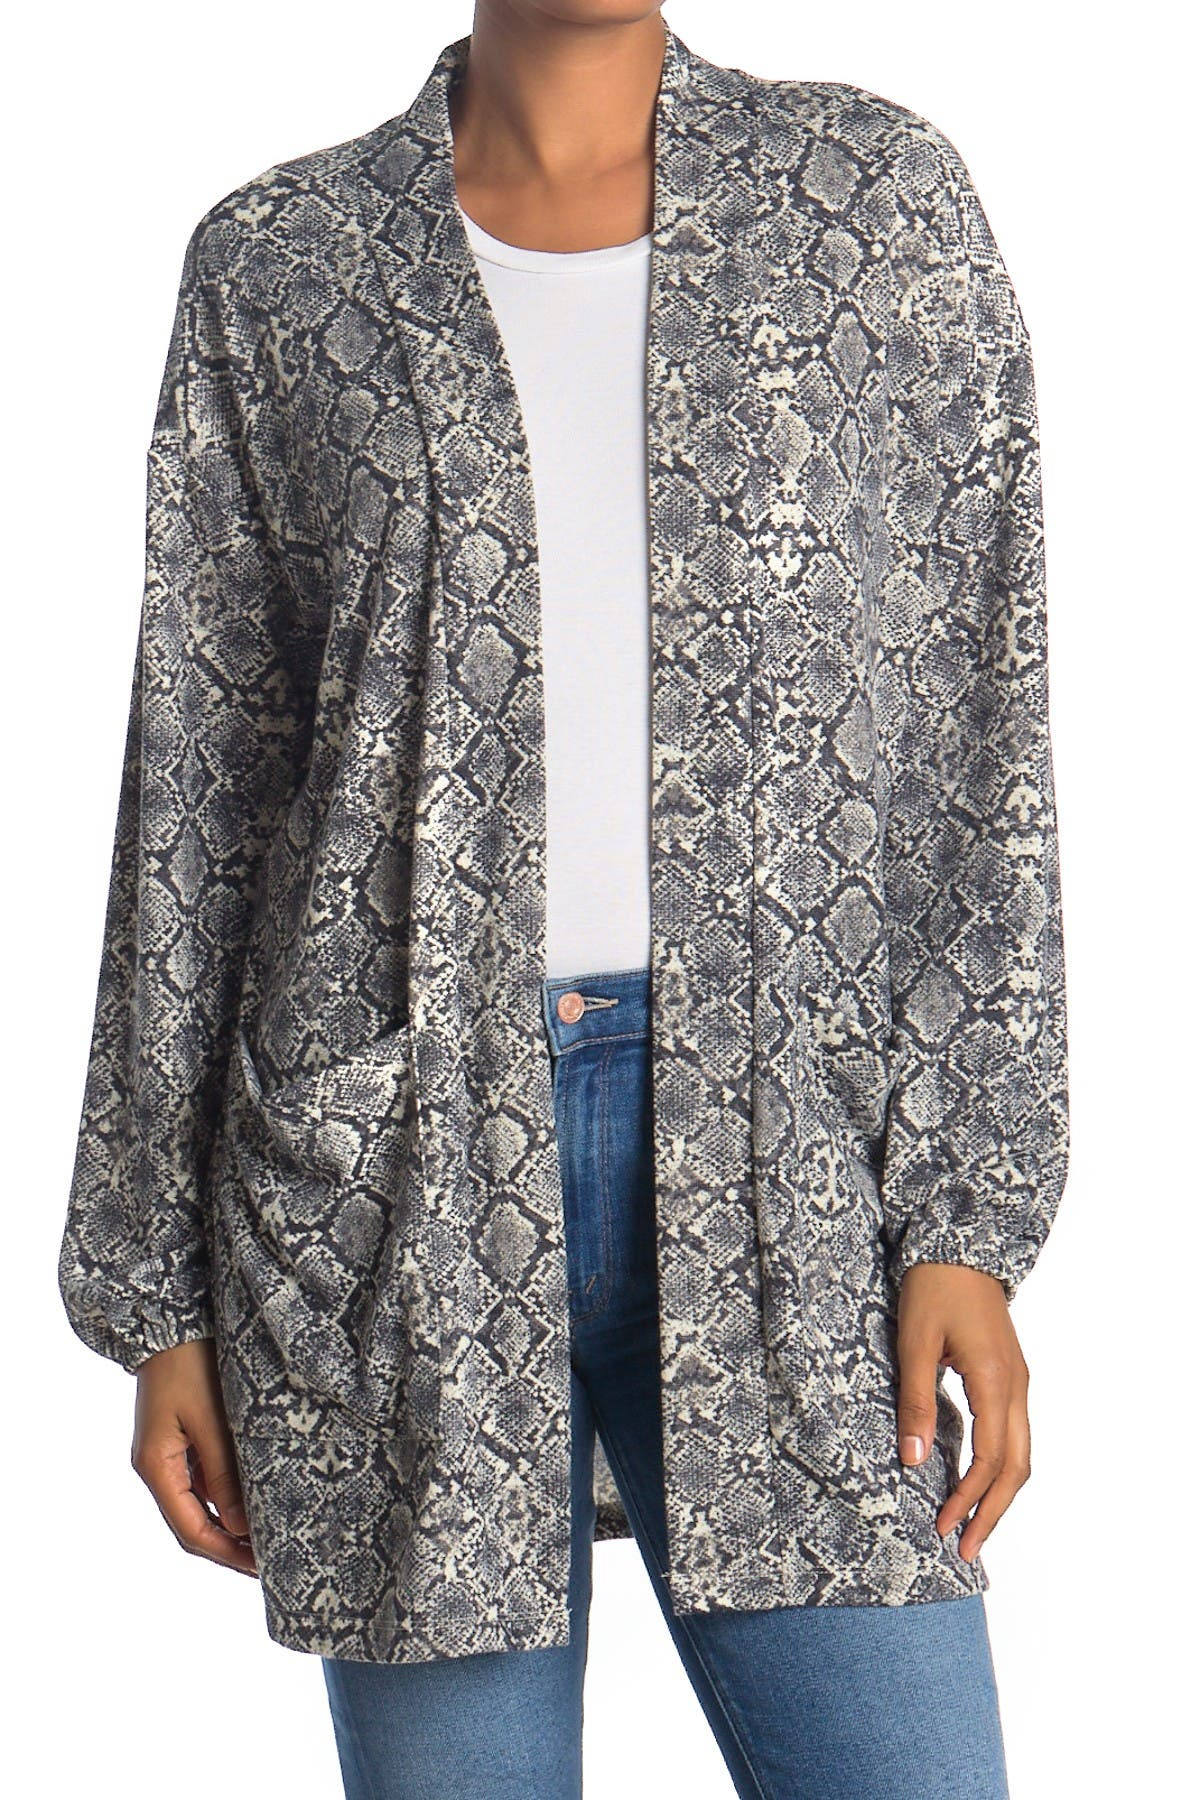 Image of MAUBY Easy Cozy Cardigan